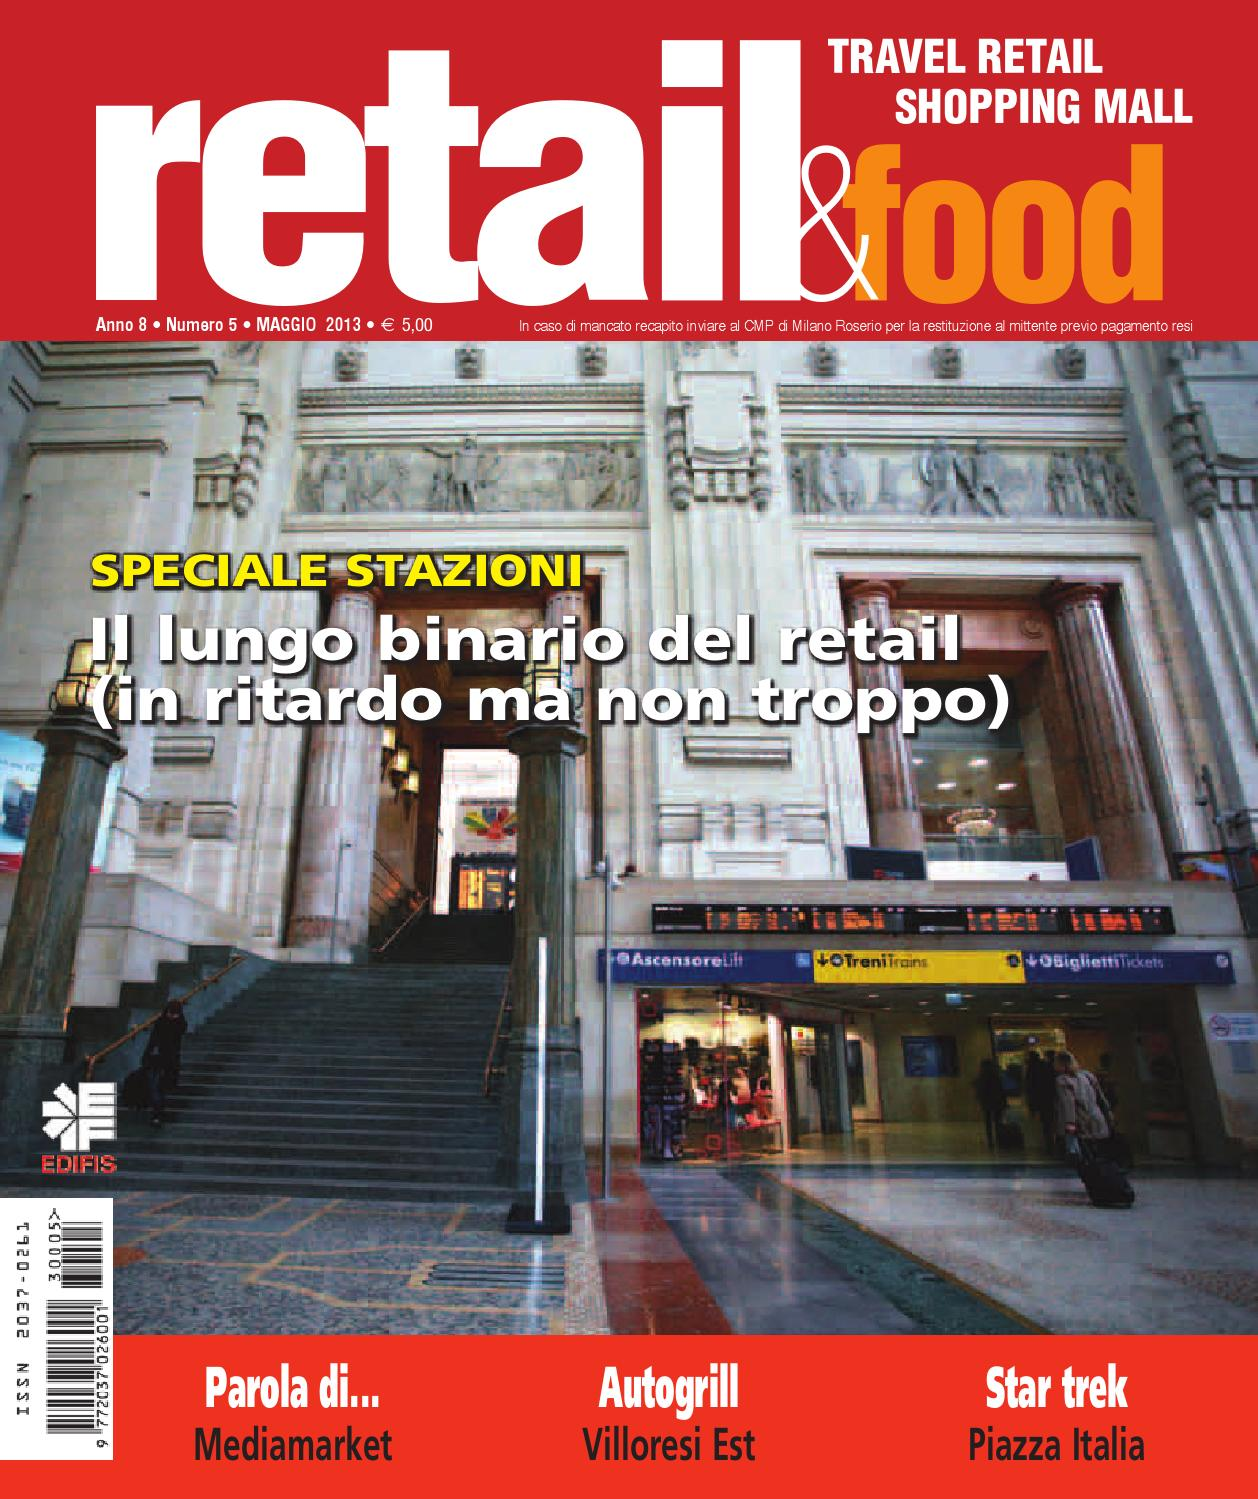 retail food 2013 05 by Edifis - issuu 31d7d9e4528